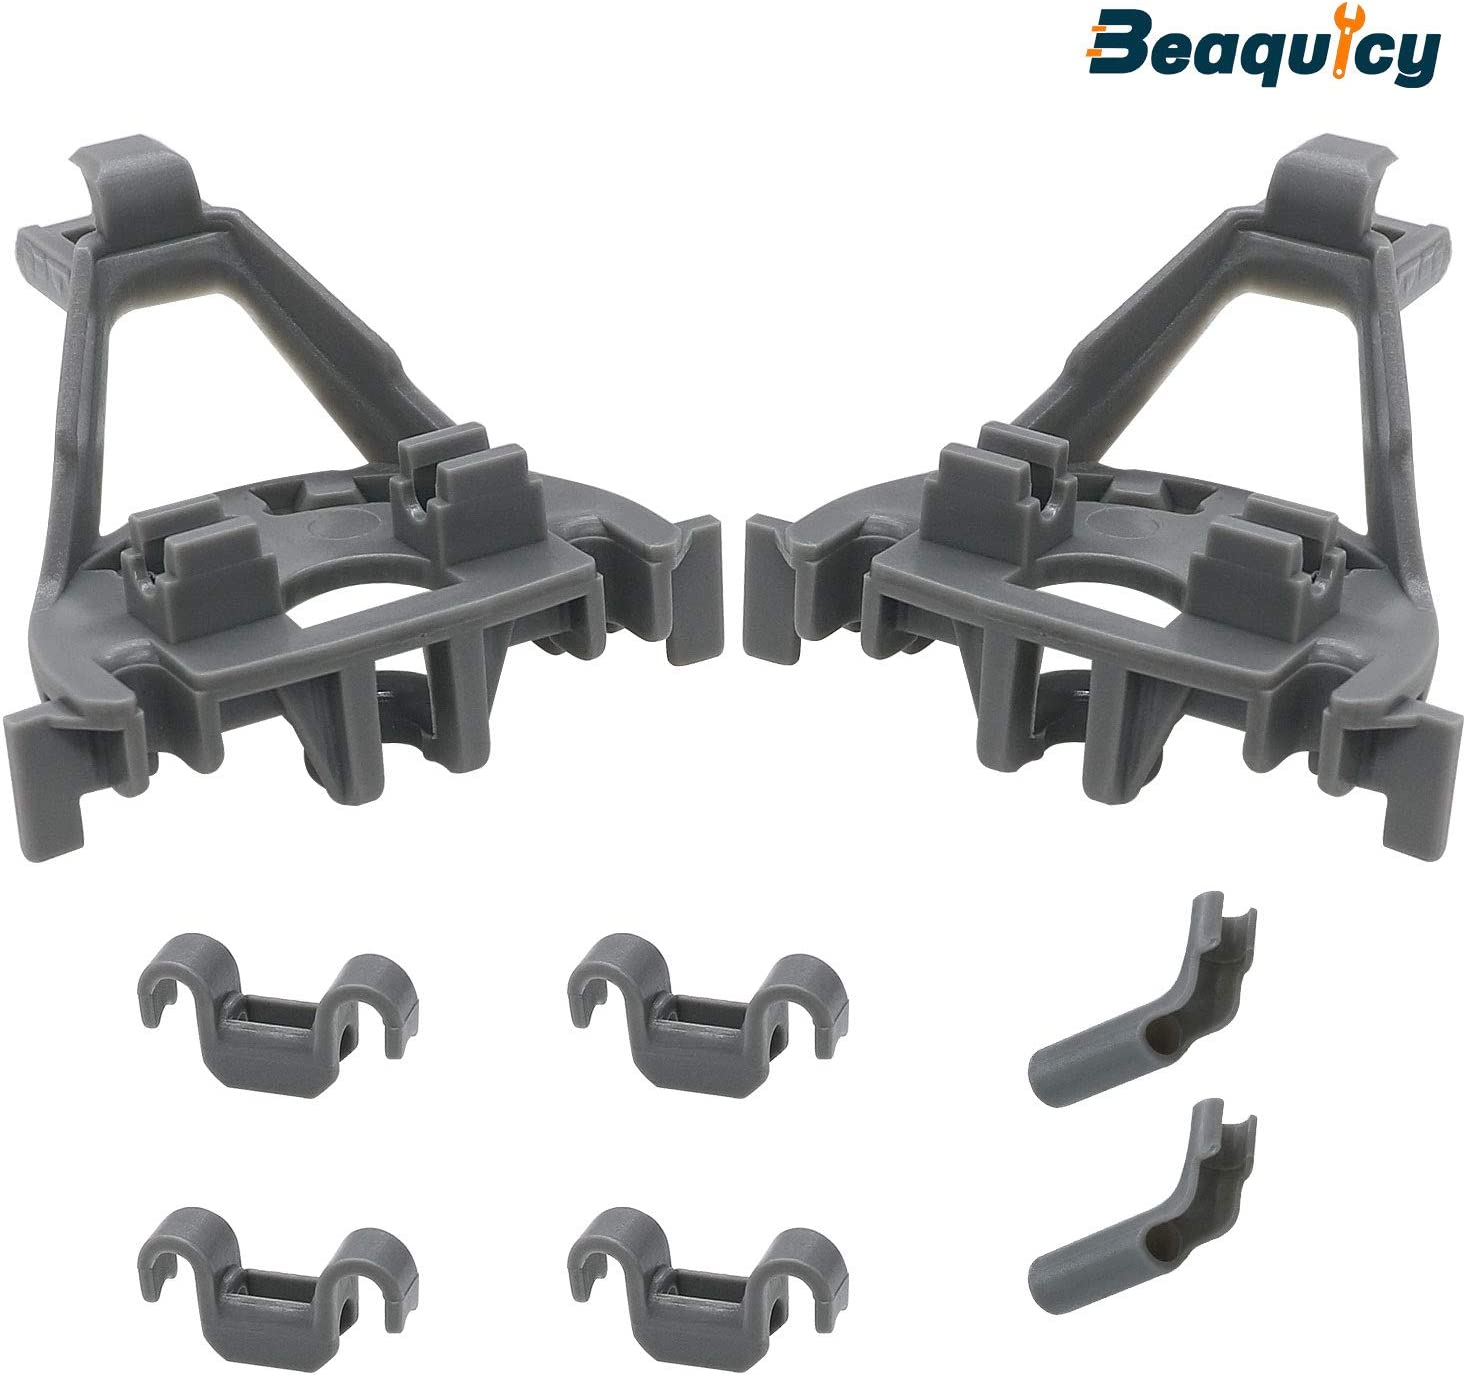 Beaquicy 00428344 Dishwasher Bearing Lower Rack Flip Tine Row Pivot Clips - Replacement for Bosch & Thermador & Kenmore Dishwasher